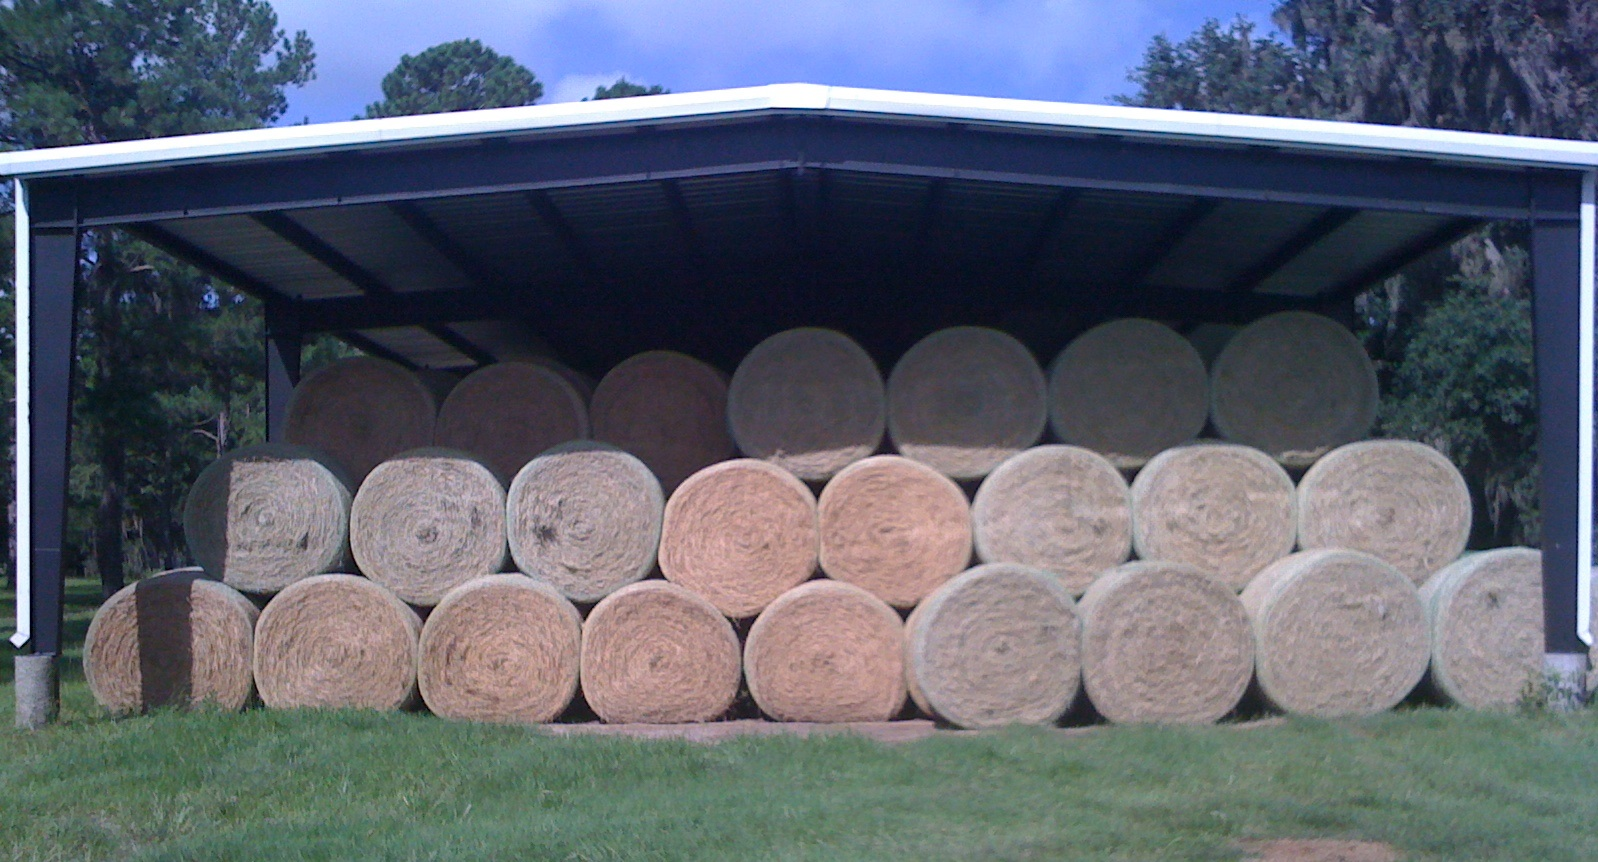 Well-made, dense hay bales maintain their quality during storage and decrease the amount of wasted hay and dollars during the winter feeding period. (Alachua, Florida)